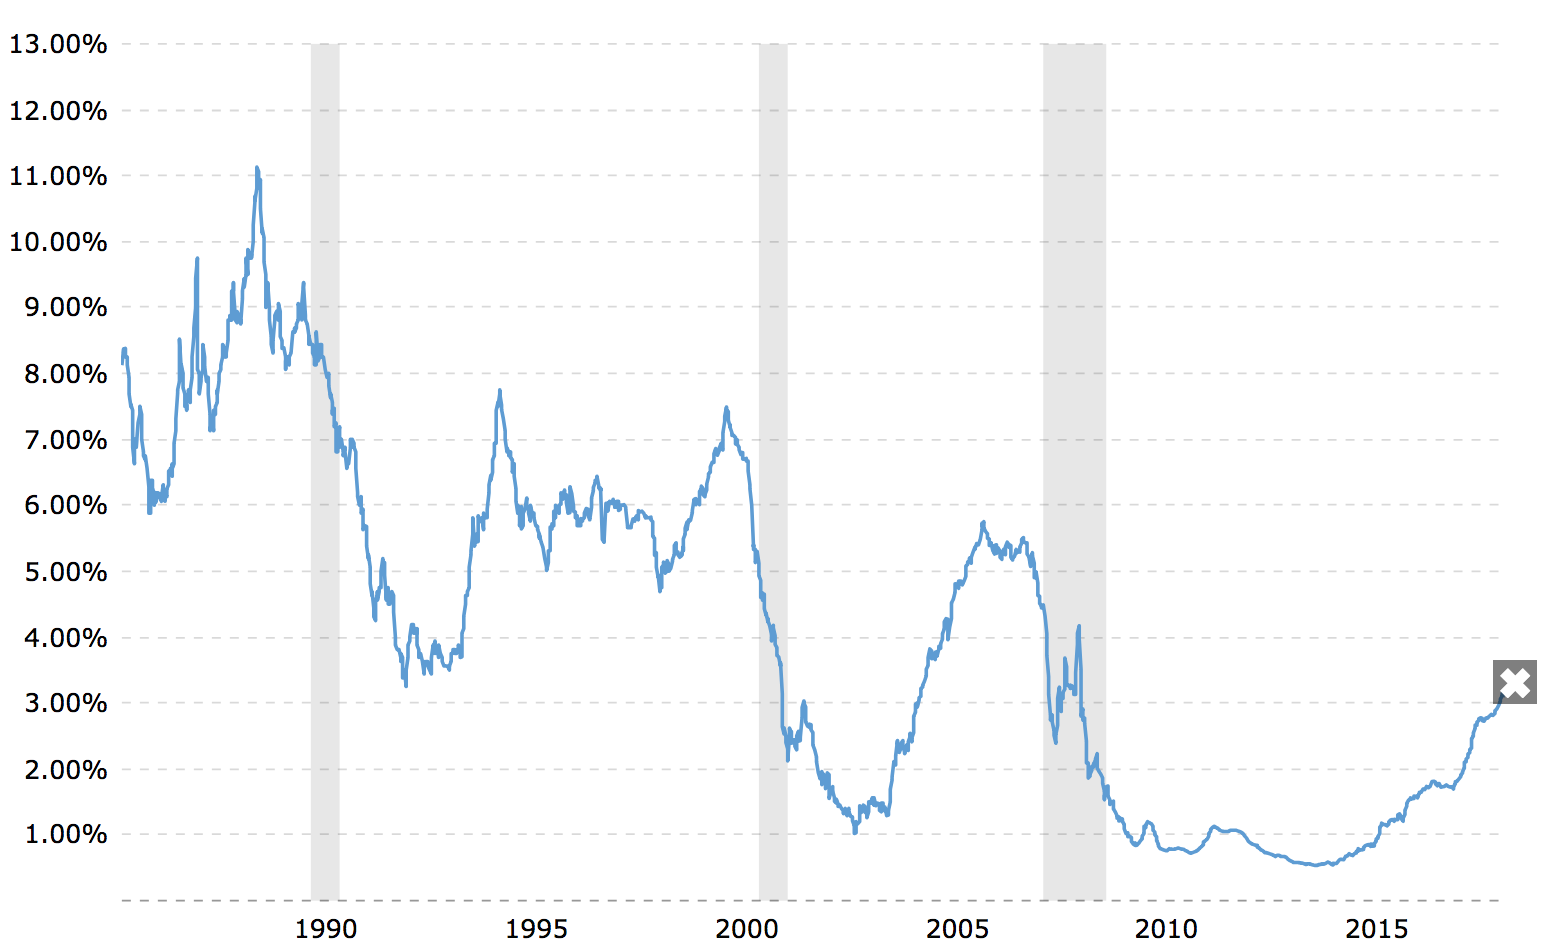 One Year LIBOR Rate Historical Chart